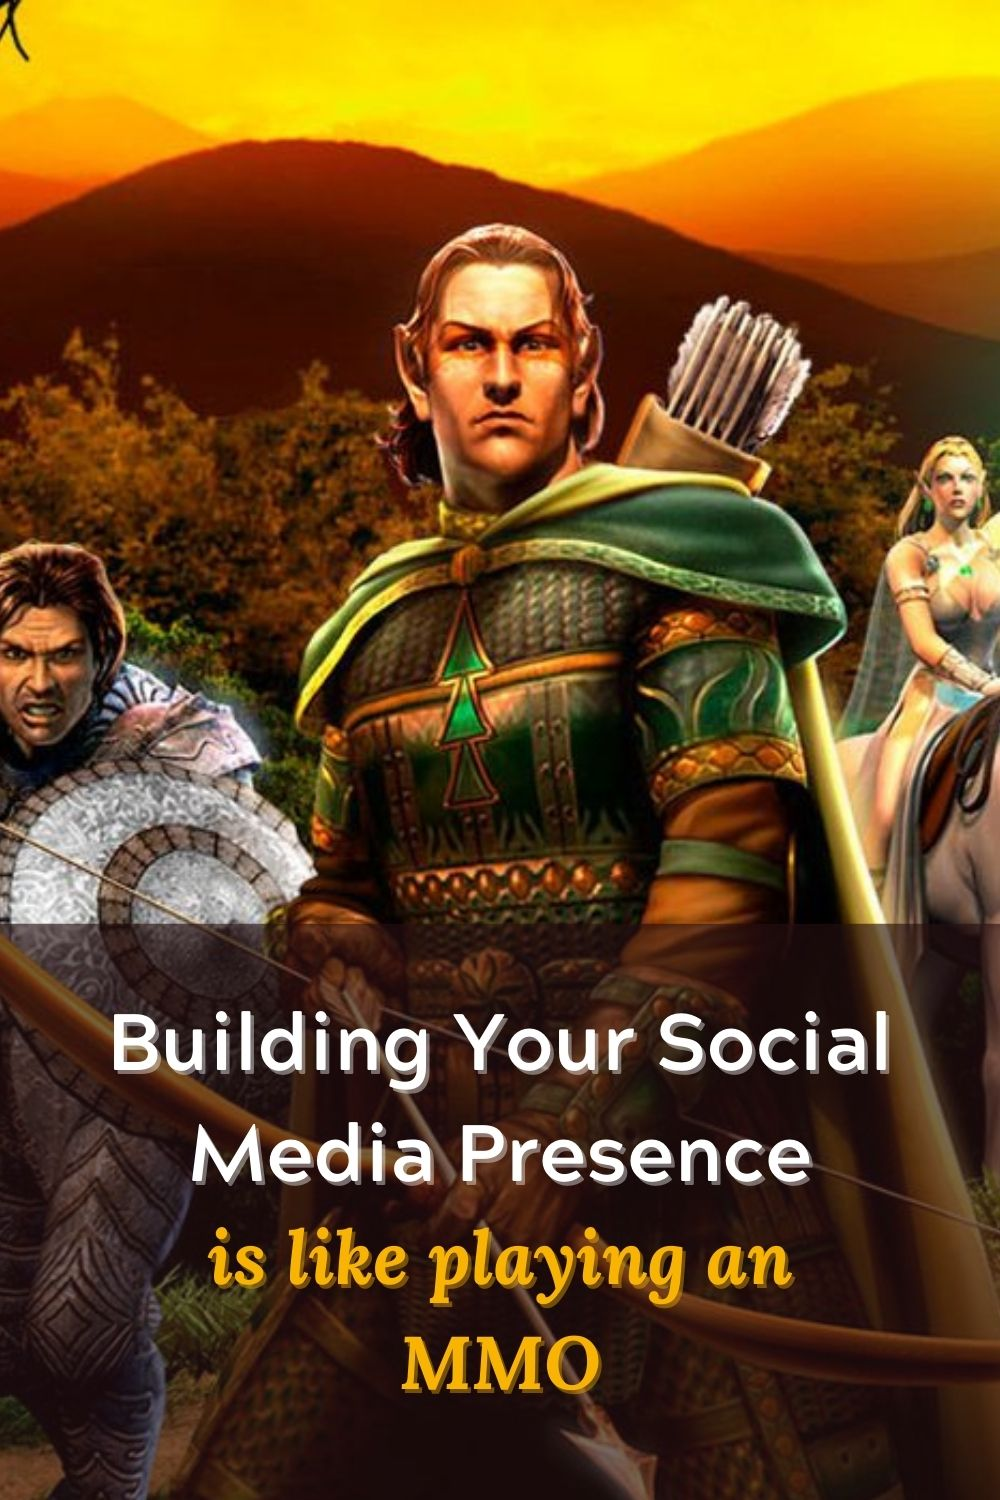 Building Your Social Media Presence is Like Playing an MMO